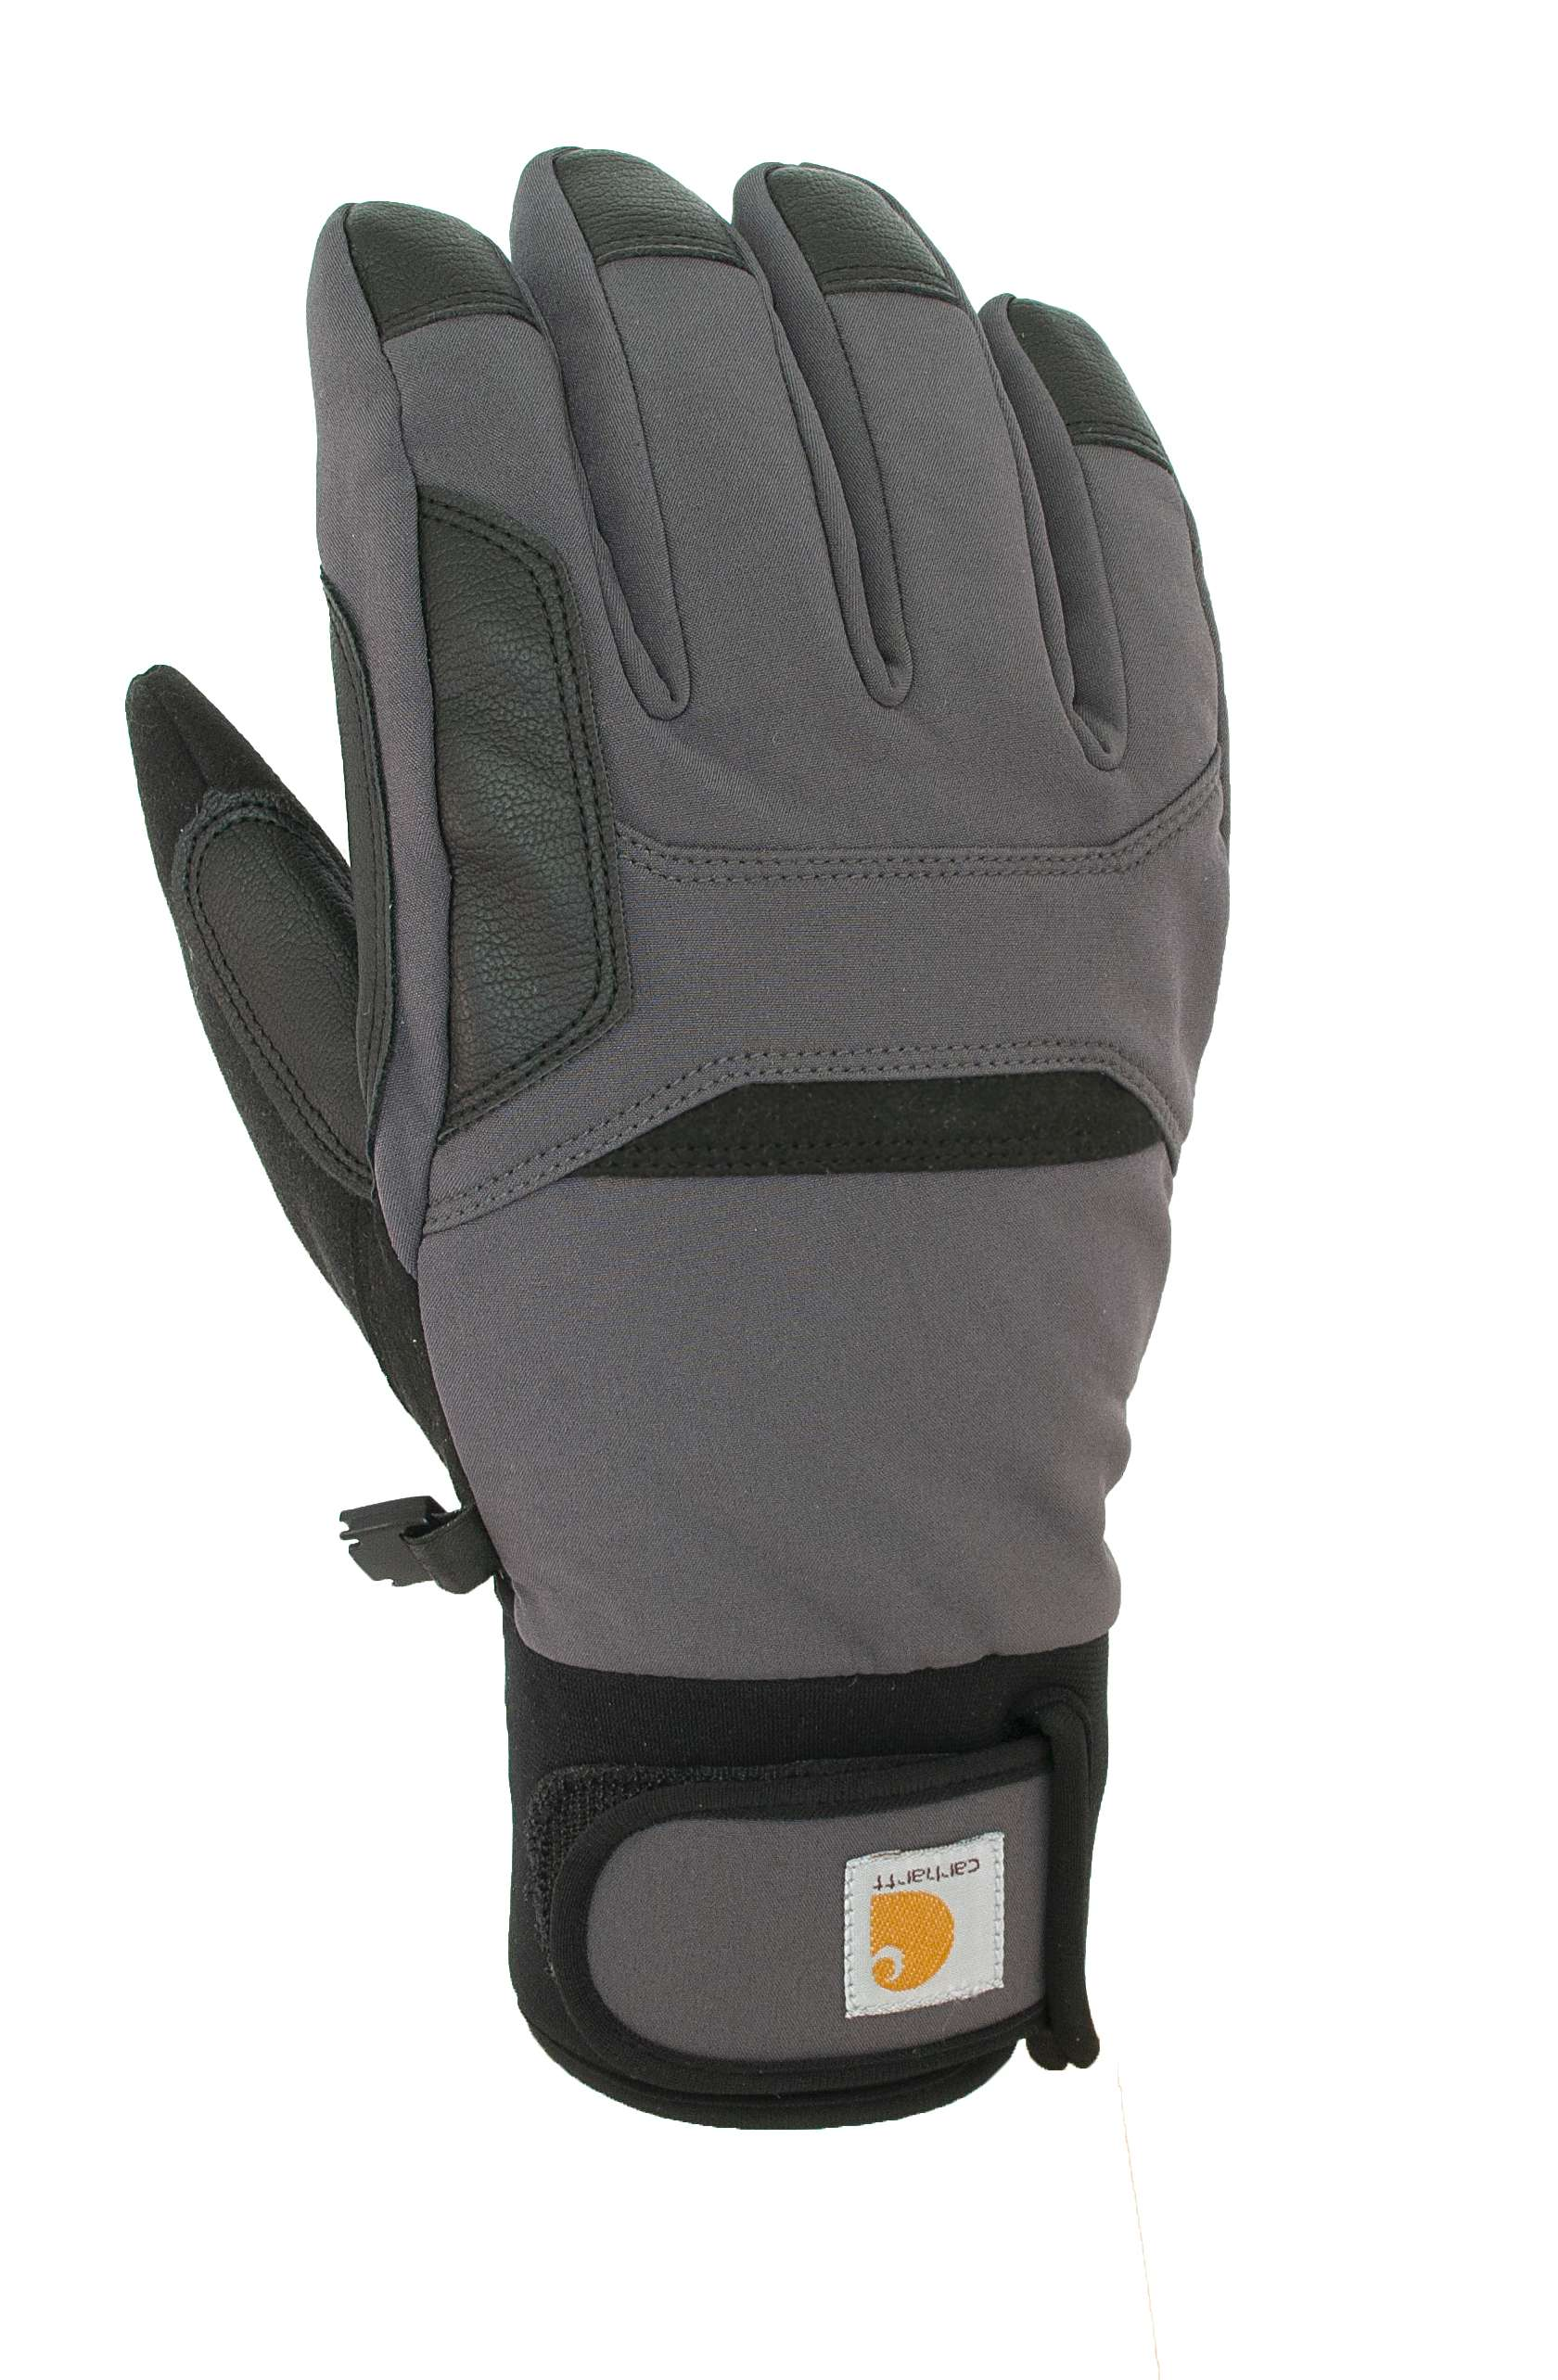 Carhartt Chisel Insulated Glove